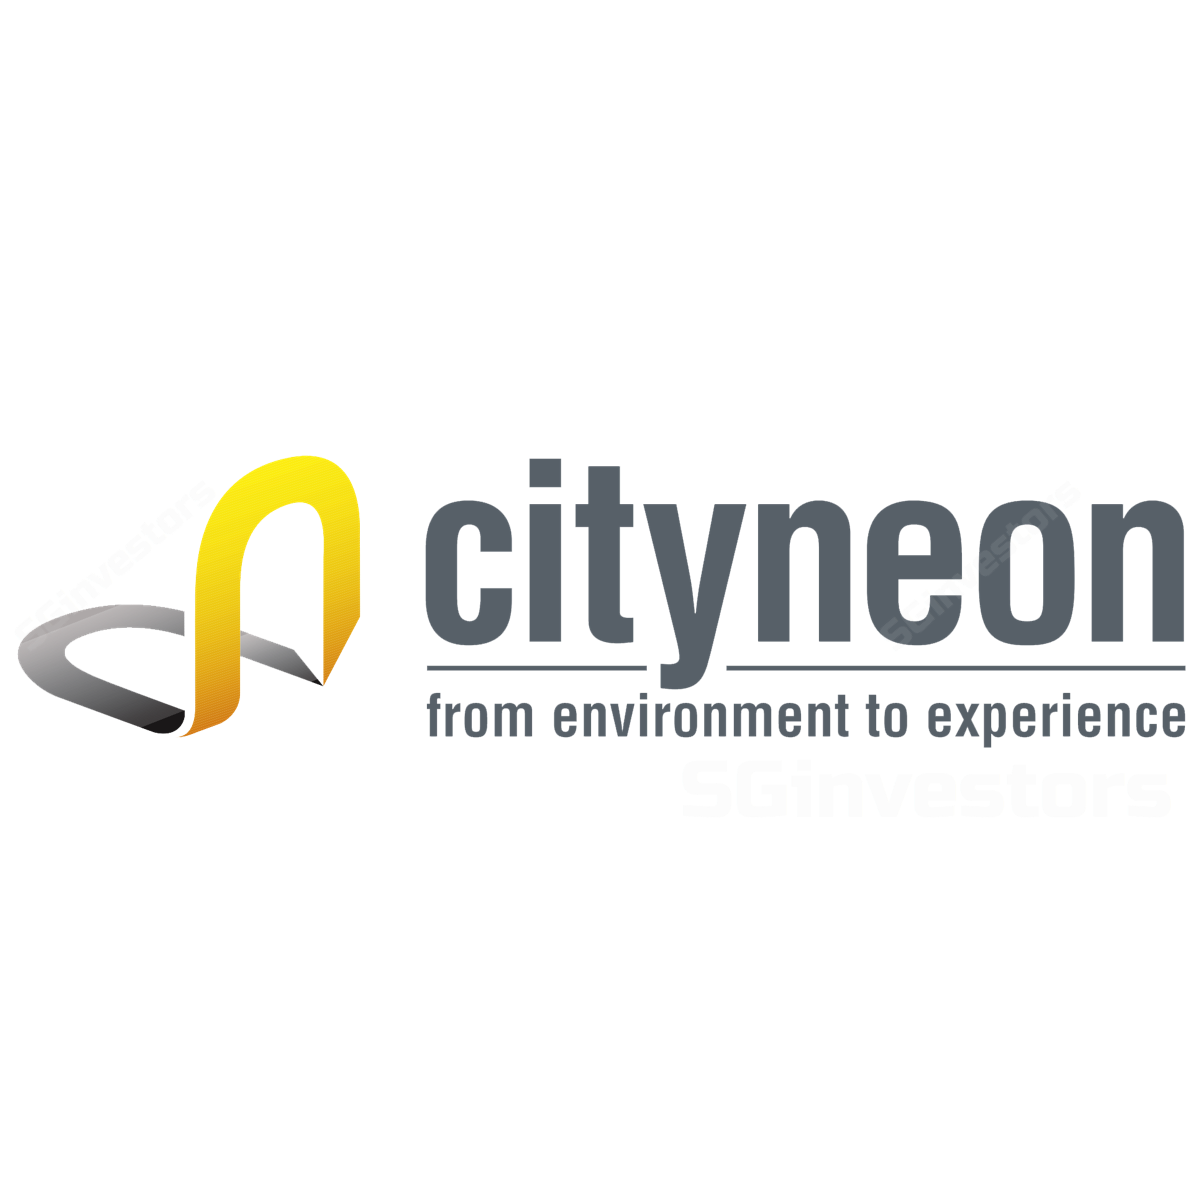 Cityneon Holdings - DBS Vickers 2017-02-24: Growth intact